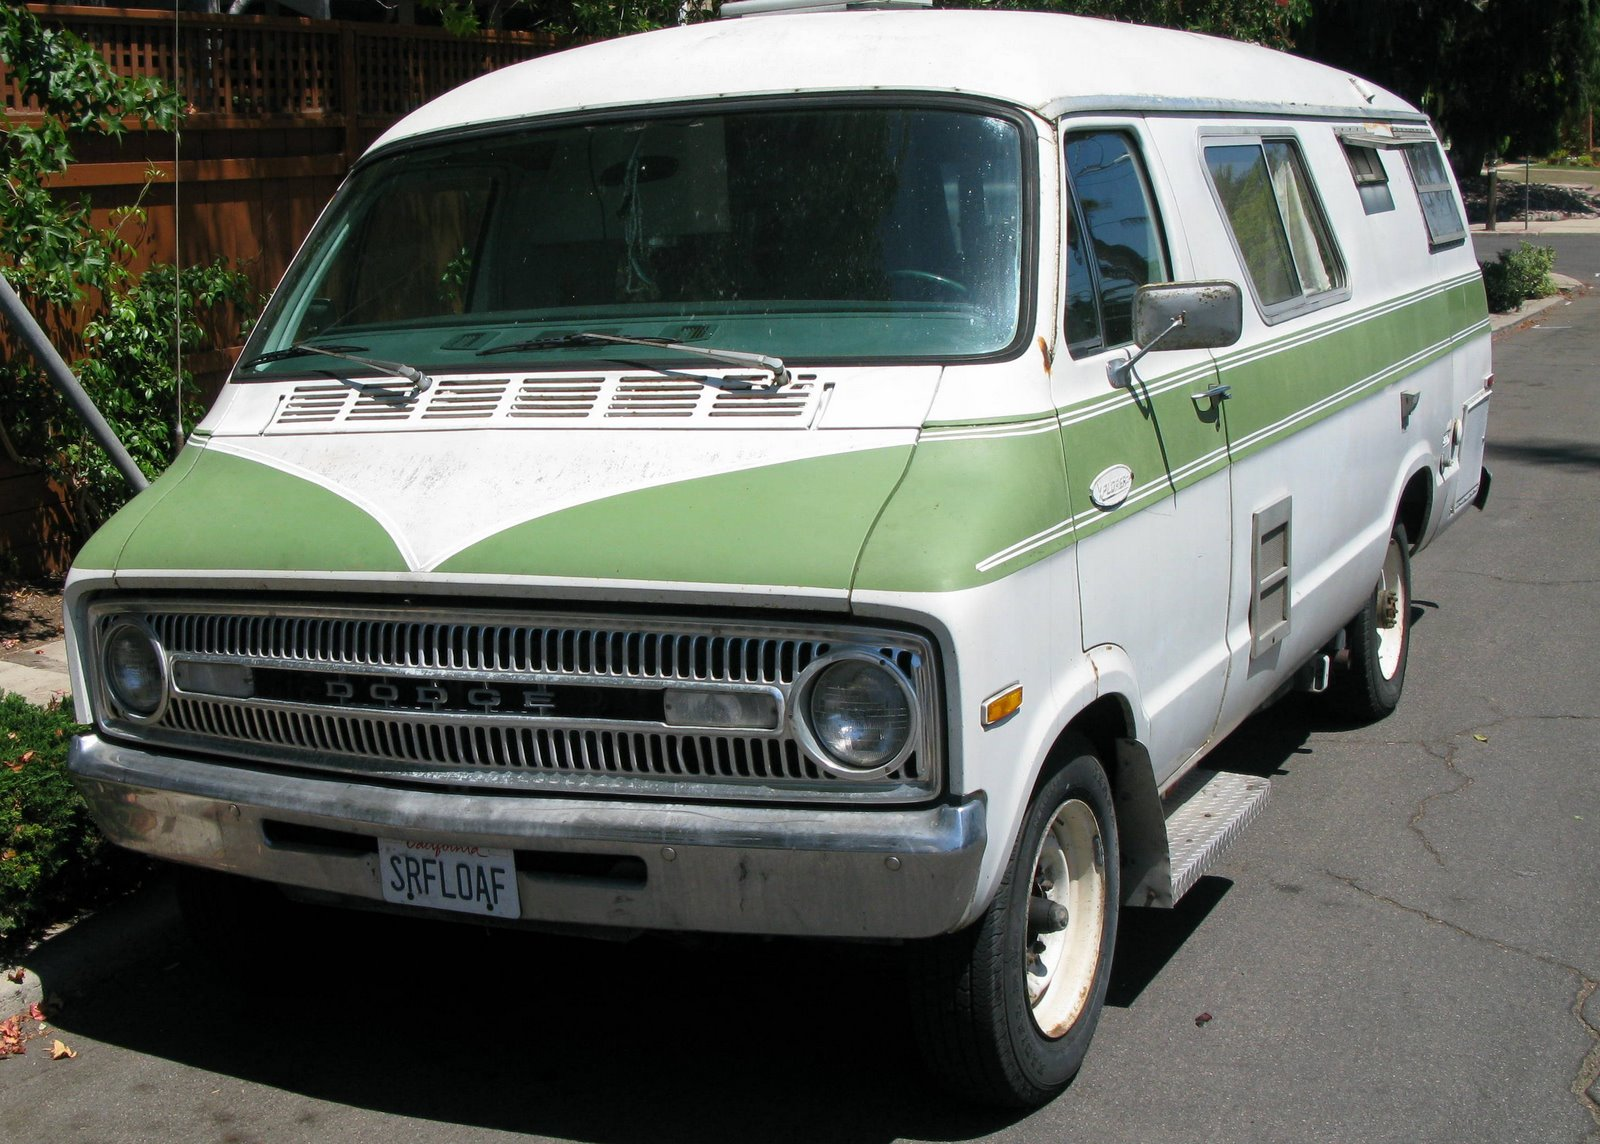 Dodge Explorer Camper Van – HD Wallpapers